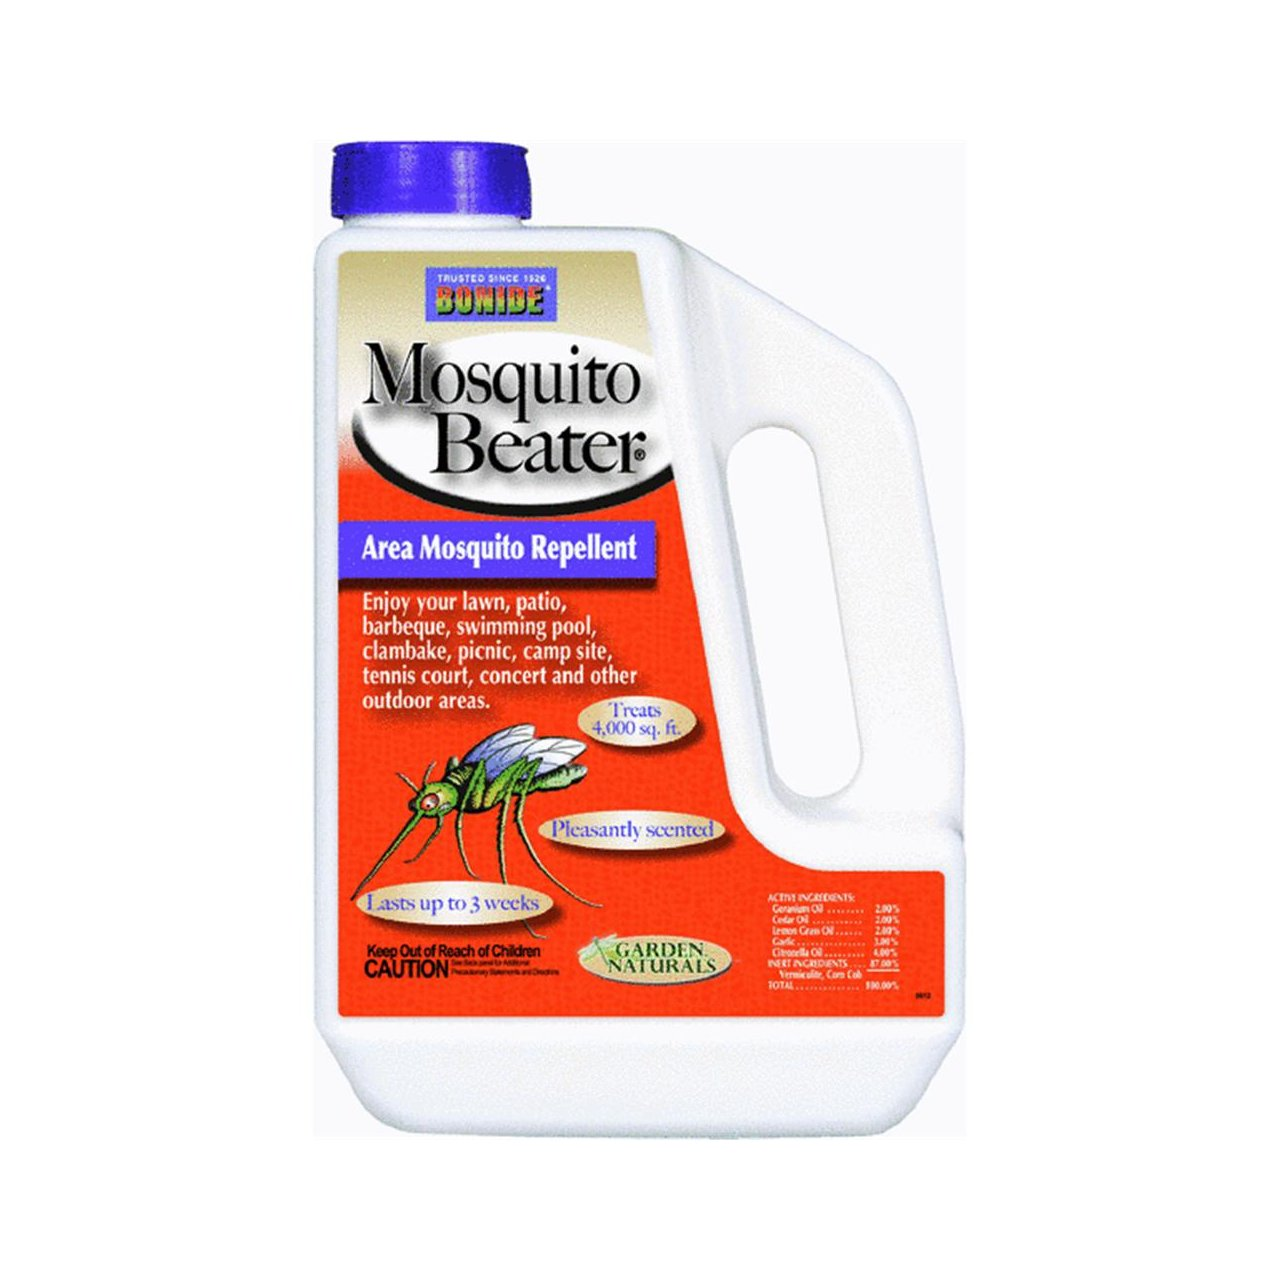 amazon com bonide mosquito beater natural granules 1 3lbs